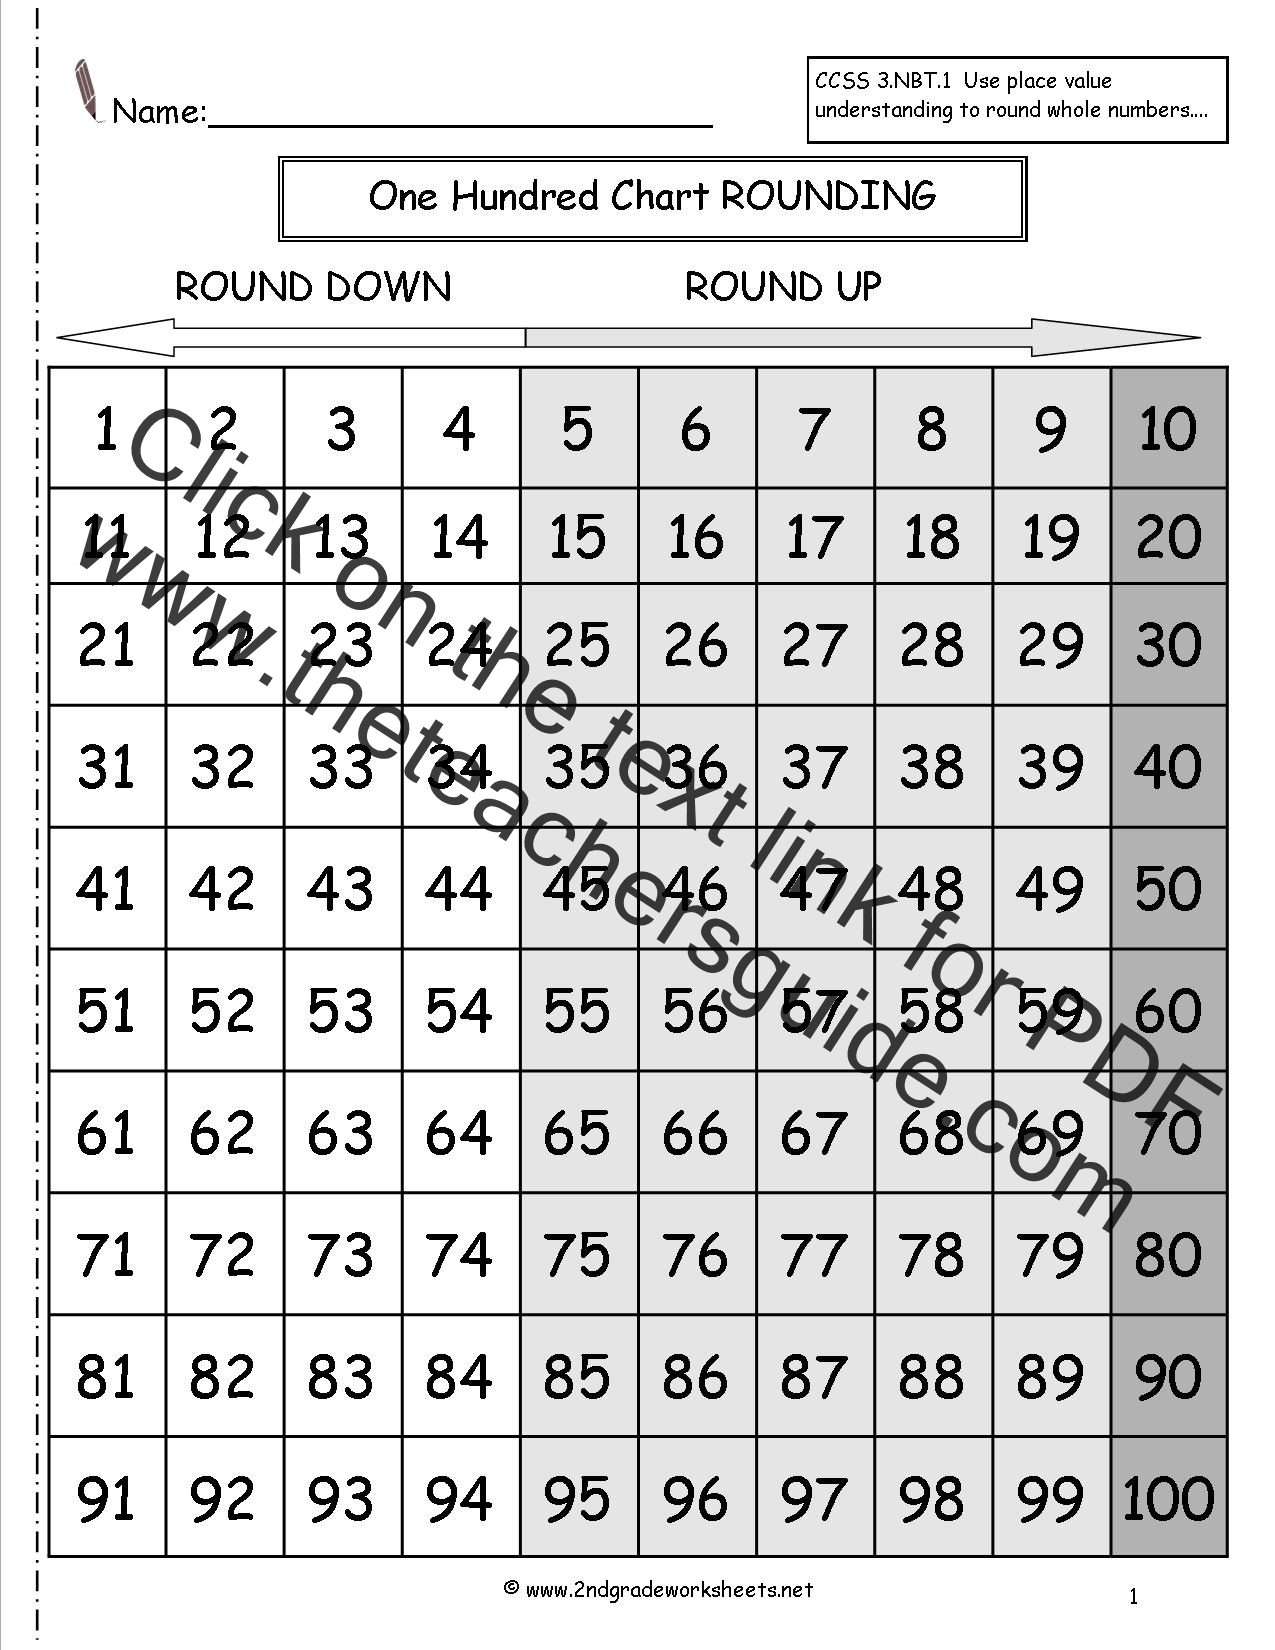 worksheet Rounding Worksheets Grade 5 rounding whole numbers worksheets one hundred chart worksheet